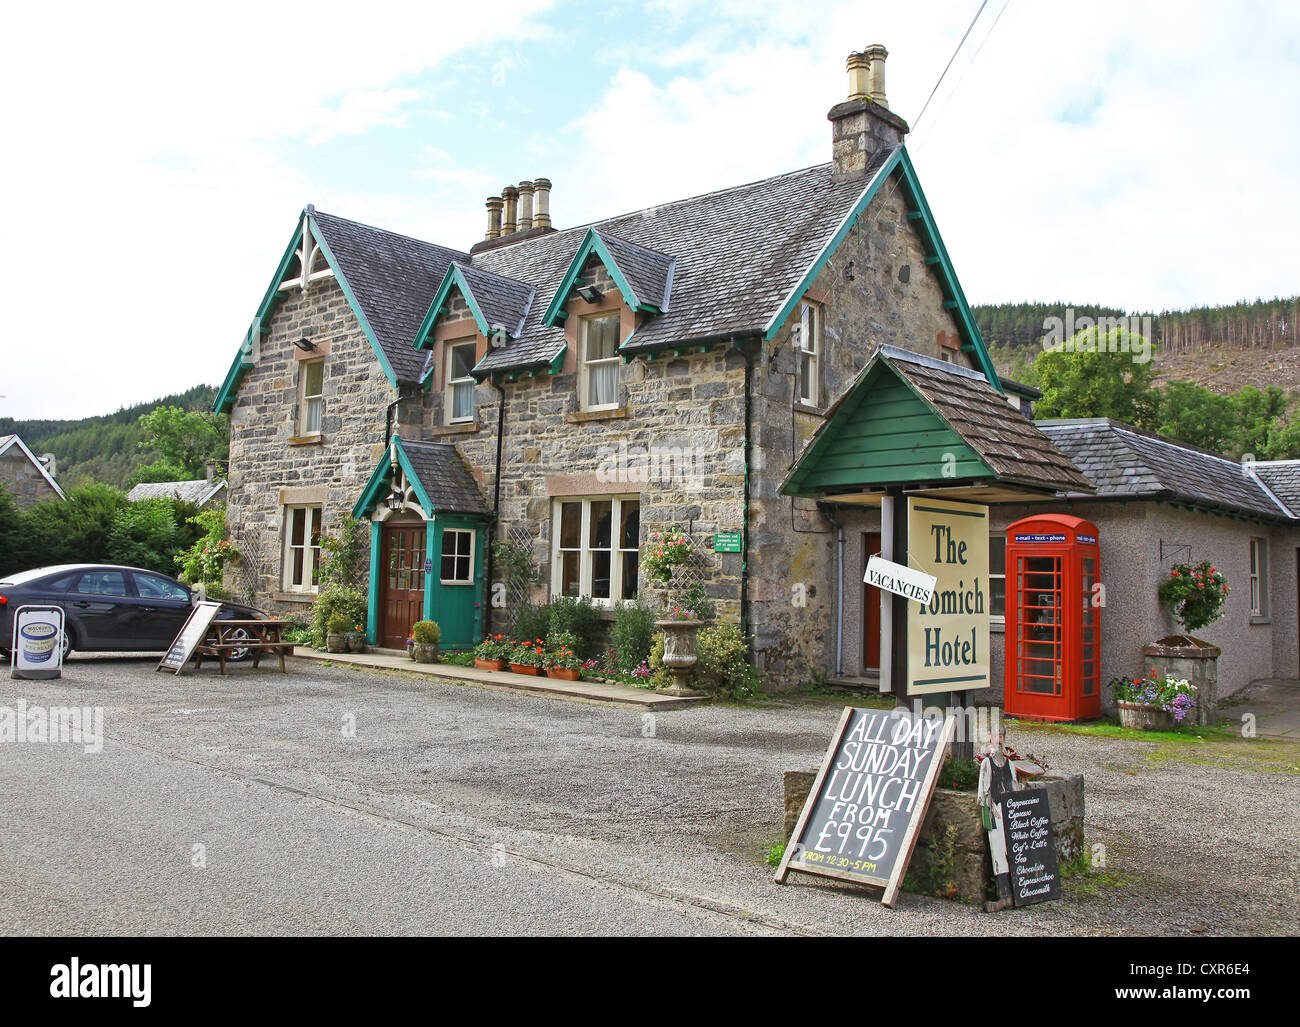 The Tomich Hotel in a Victorian model conservation village Inverness-shire Scottish Highlands Scotland - Stock Image